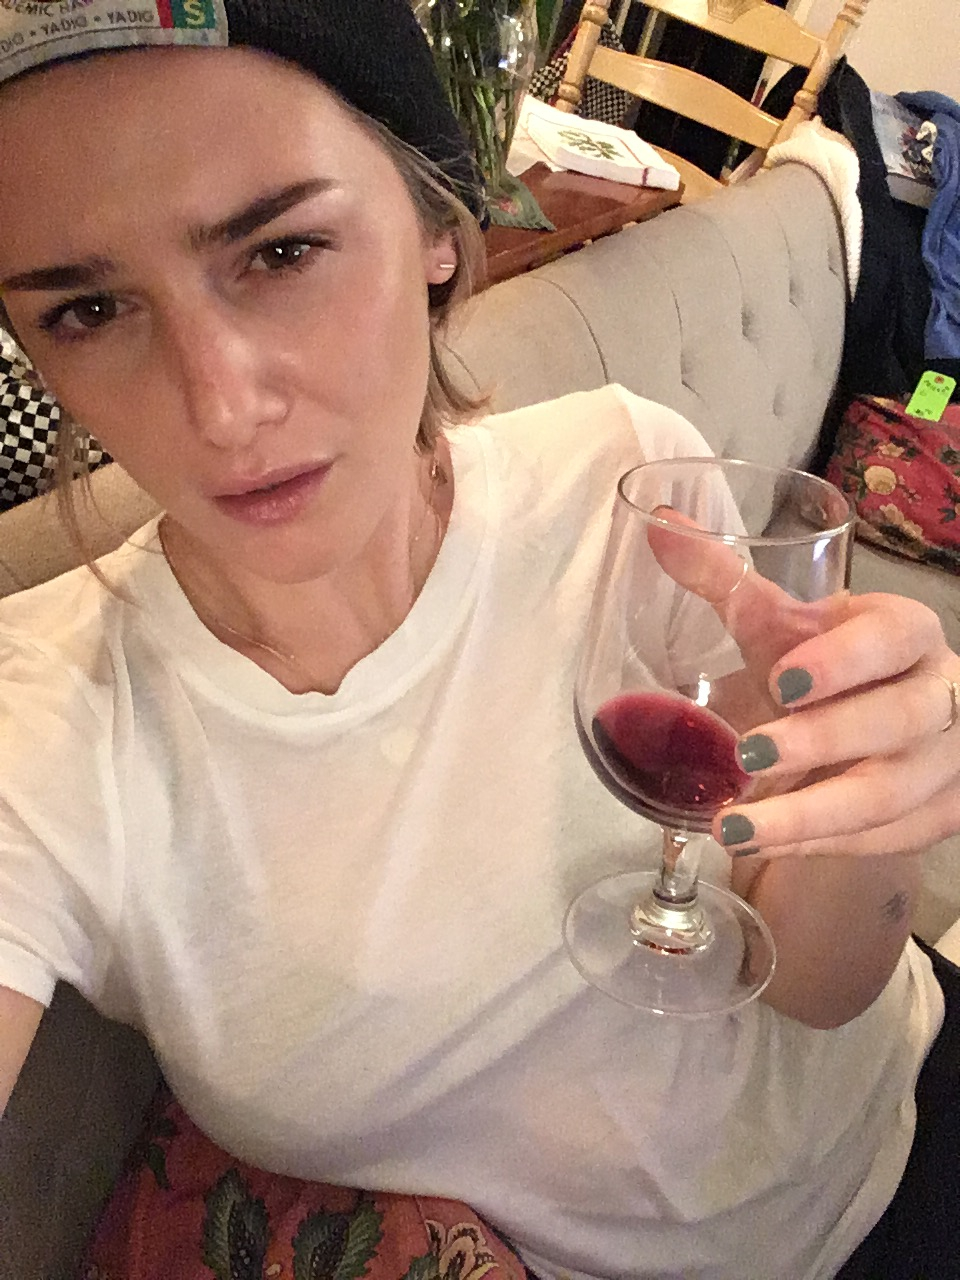 Addison Timlin fotos calientes 4